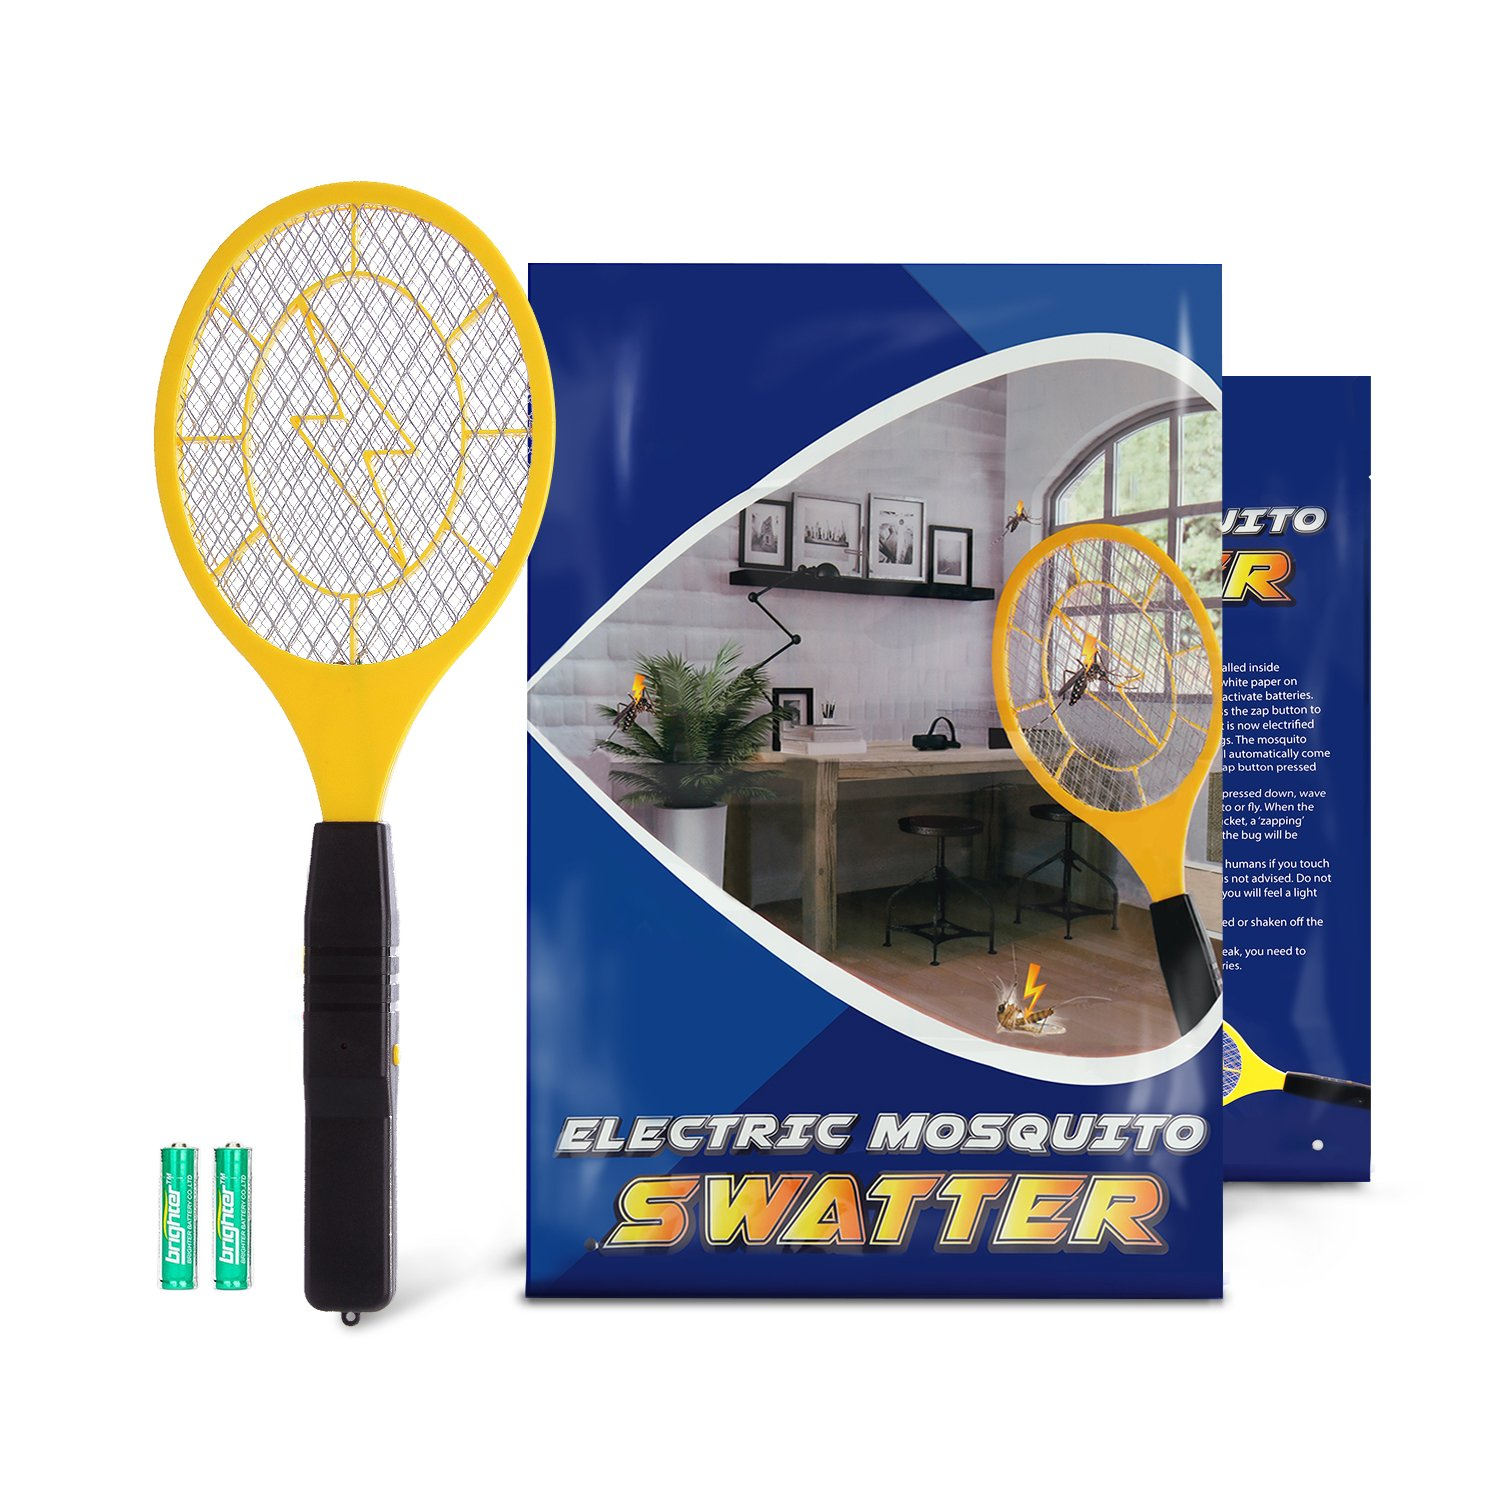 Bug Zapper-Zentouch Electric Fly Swatter Mosquito Zapper against Flies,Bugs,Bees and Other Pest, Suitable for Indoor,Travel, Campings and Outdoor Occasions,Fly Killer with 2 AA Batteries Included Saiten